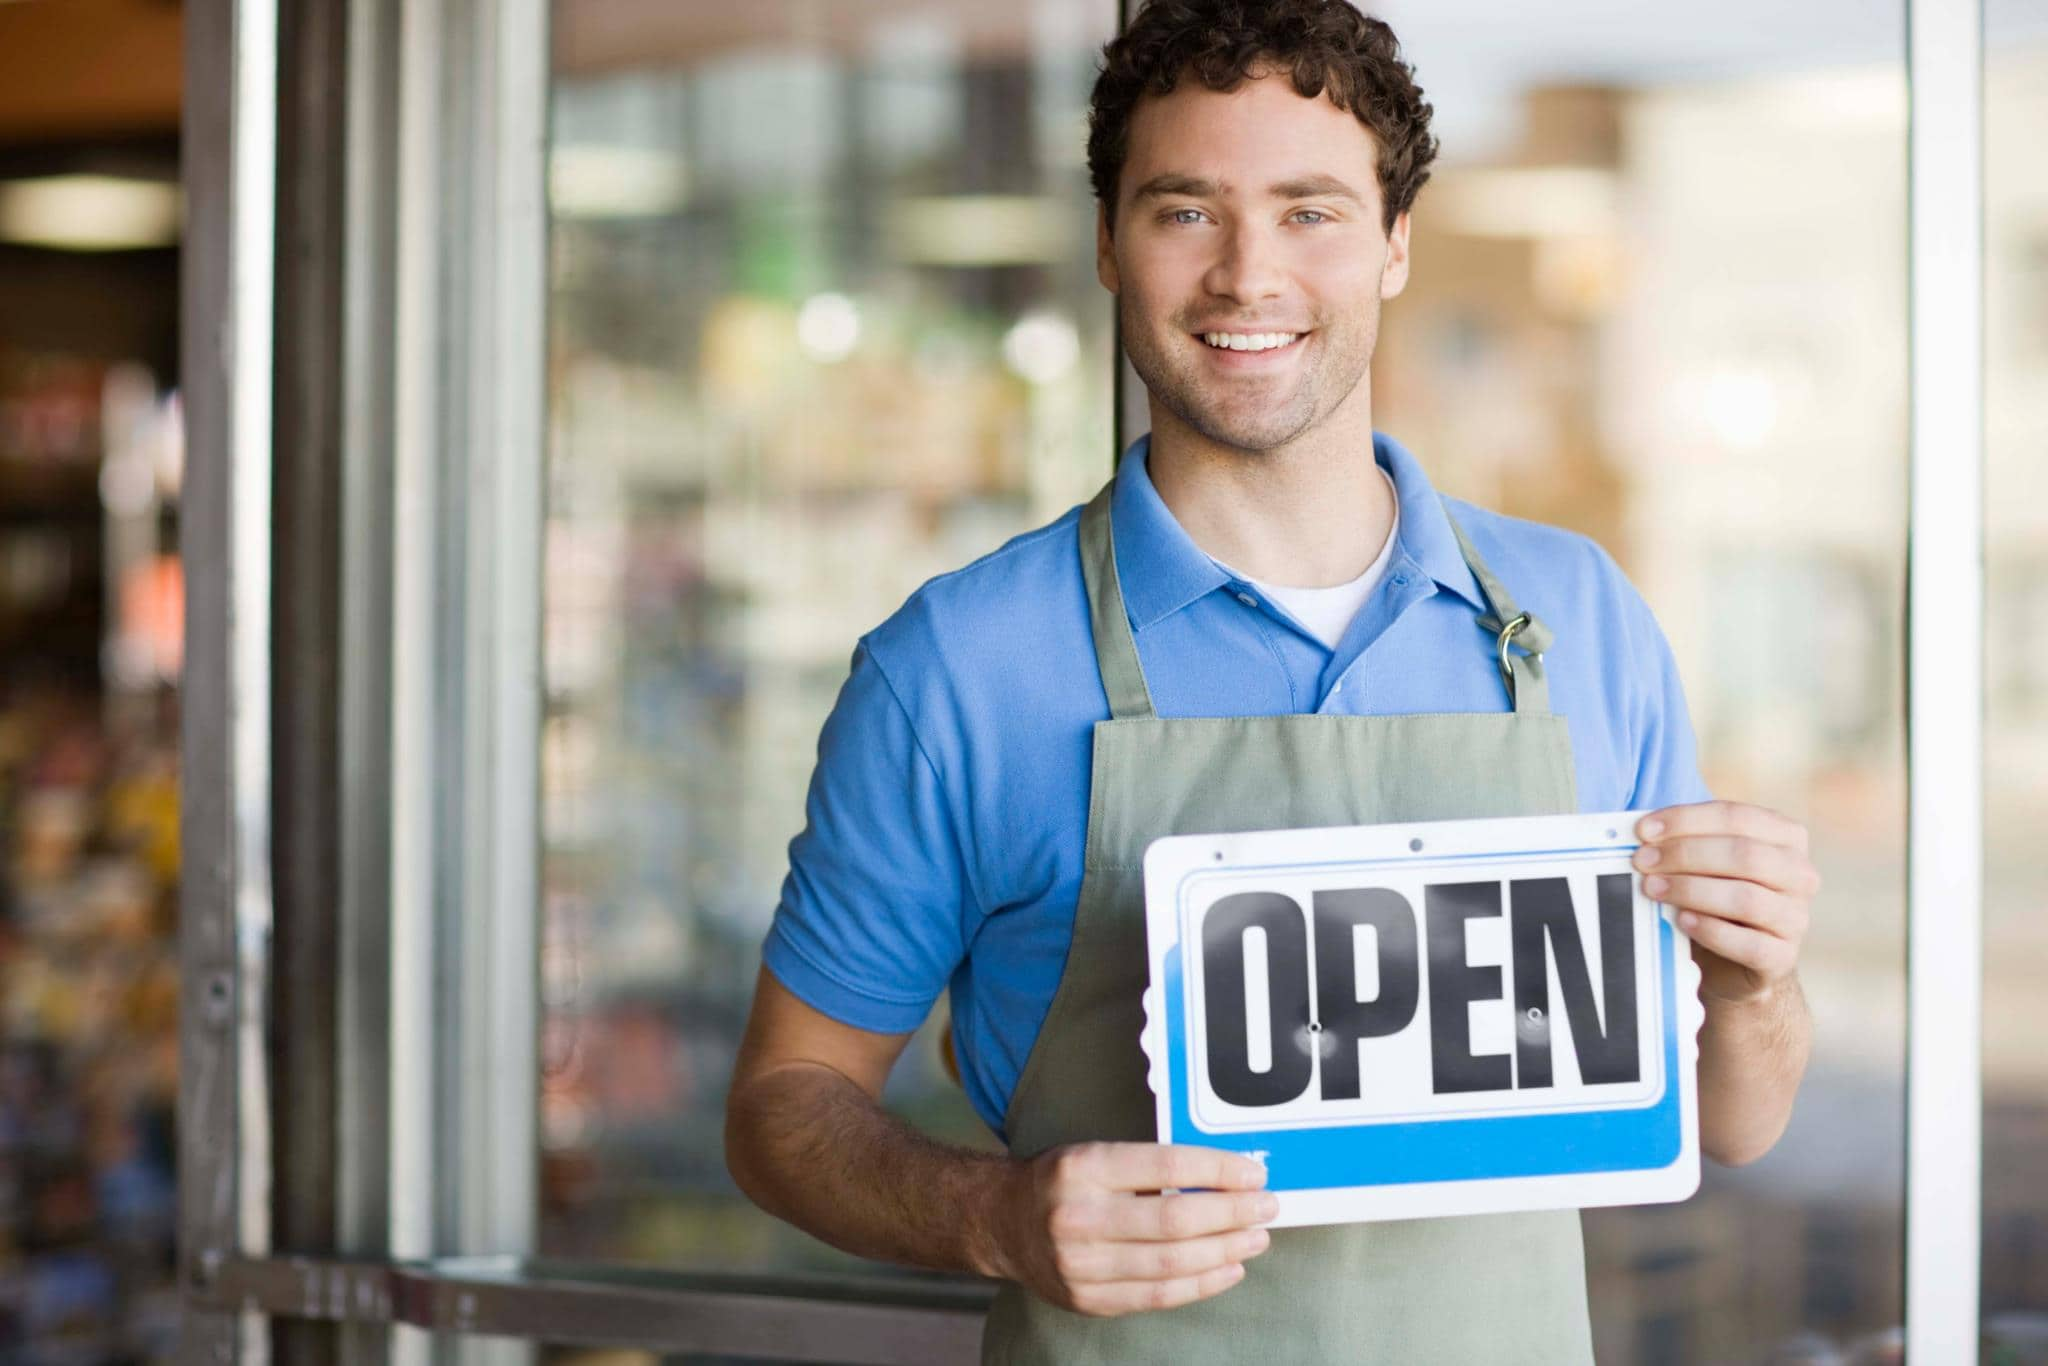 How to Open Cafe After Bankruptcy in 2020? Find Out Read here